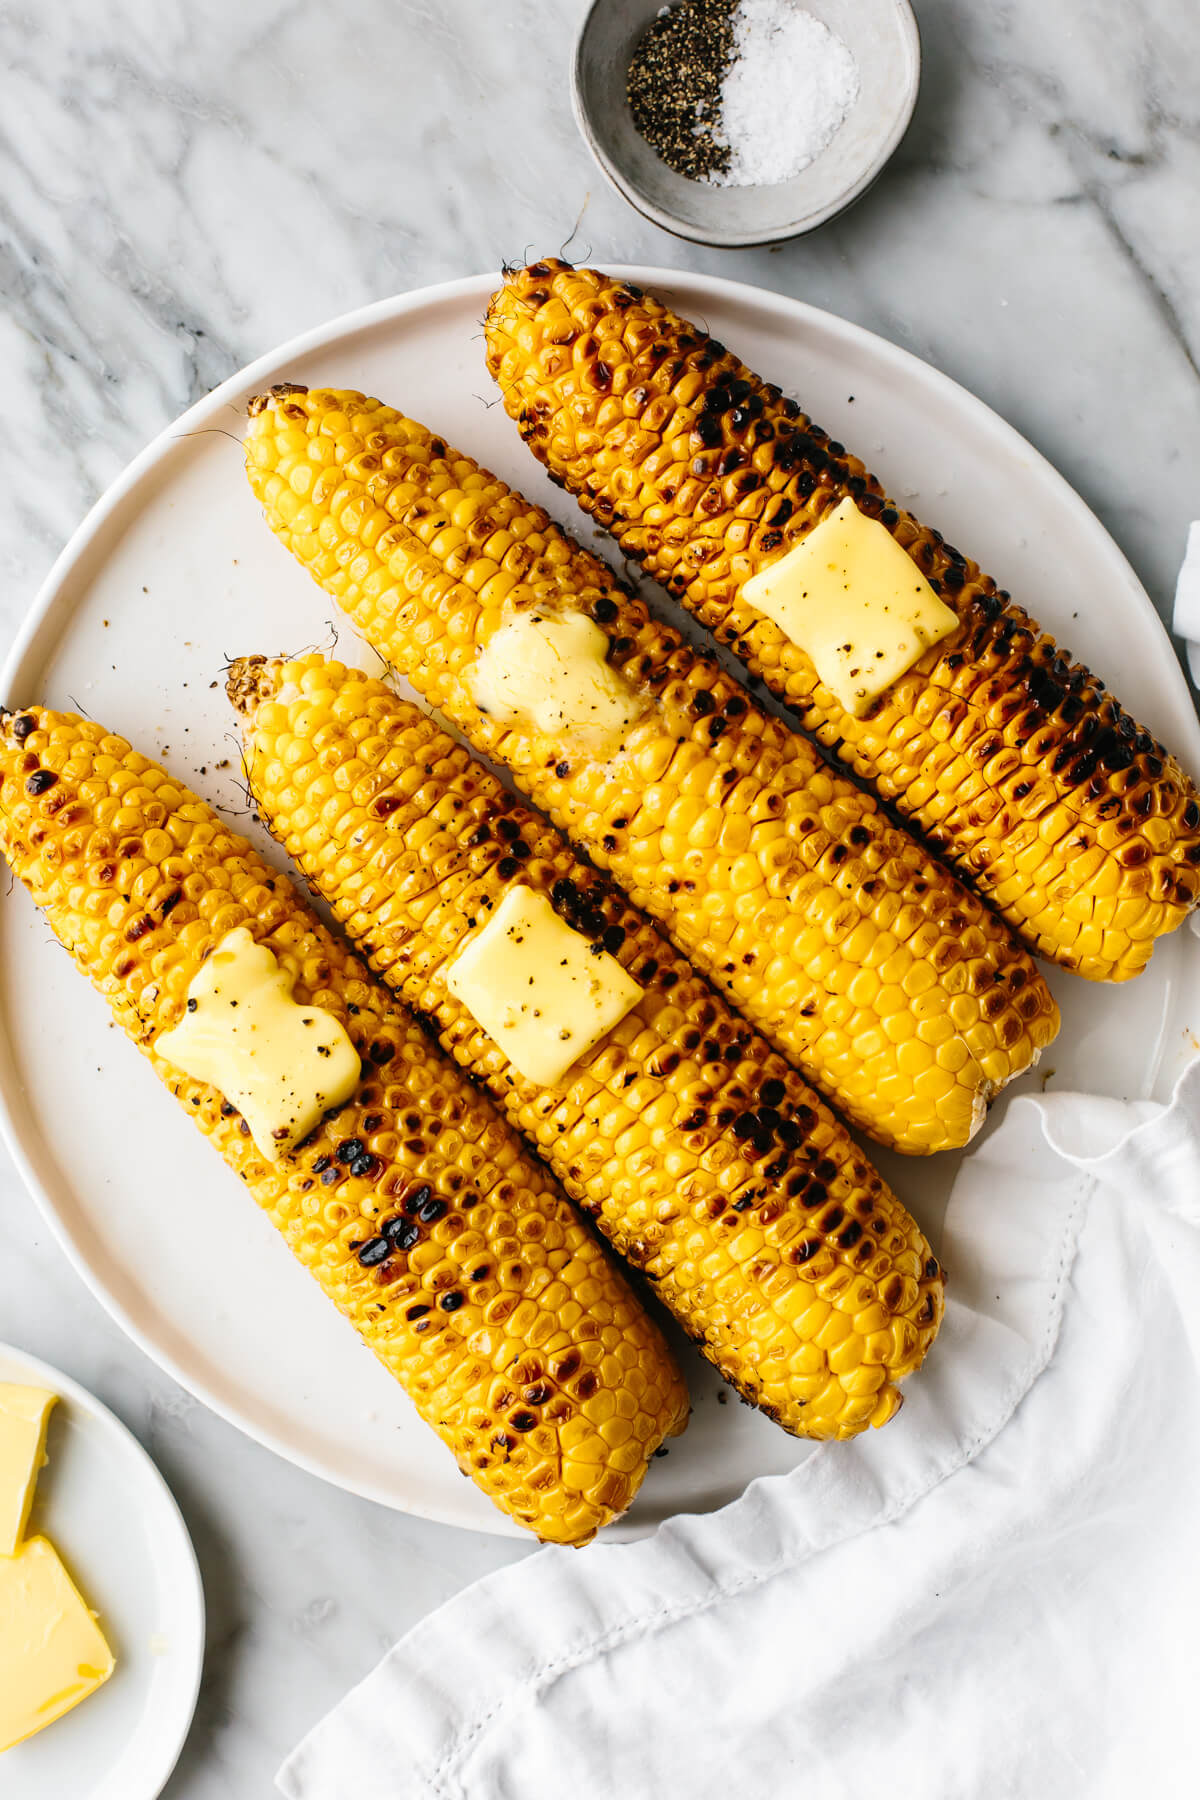 Grilled corns on the cobb on a white plate next to butter.